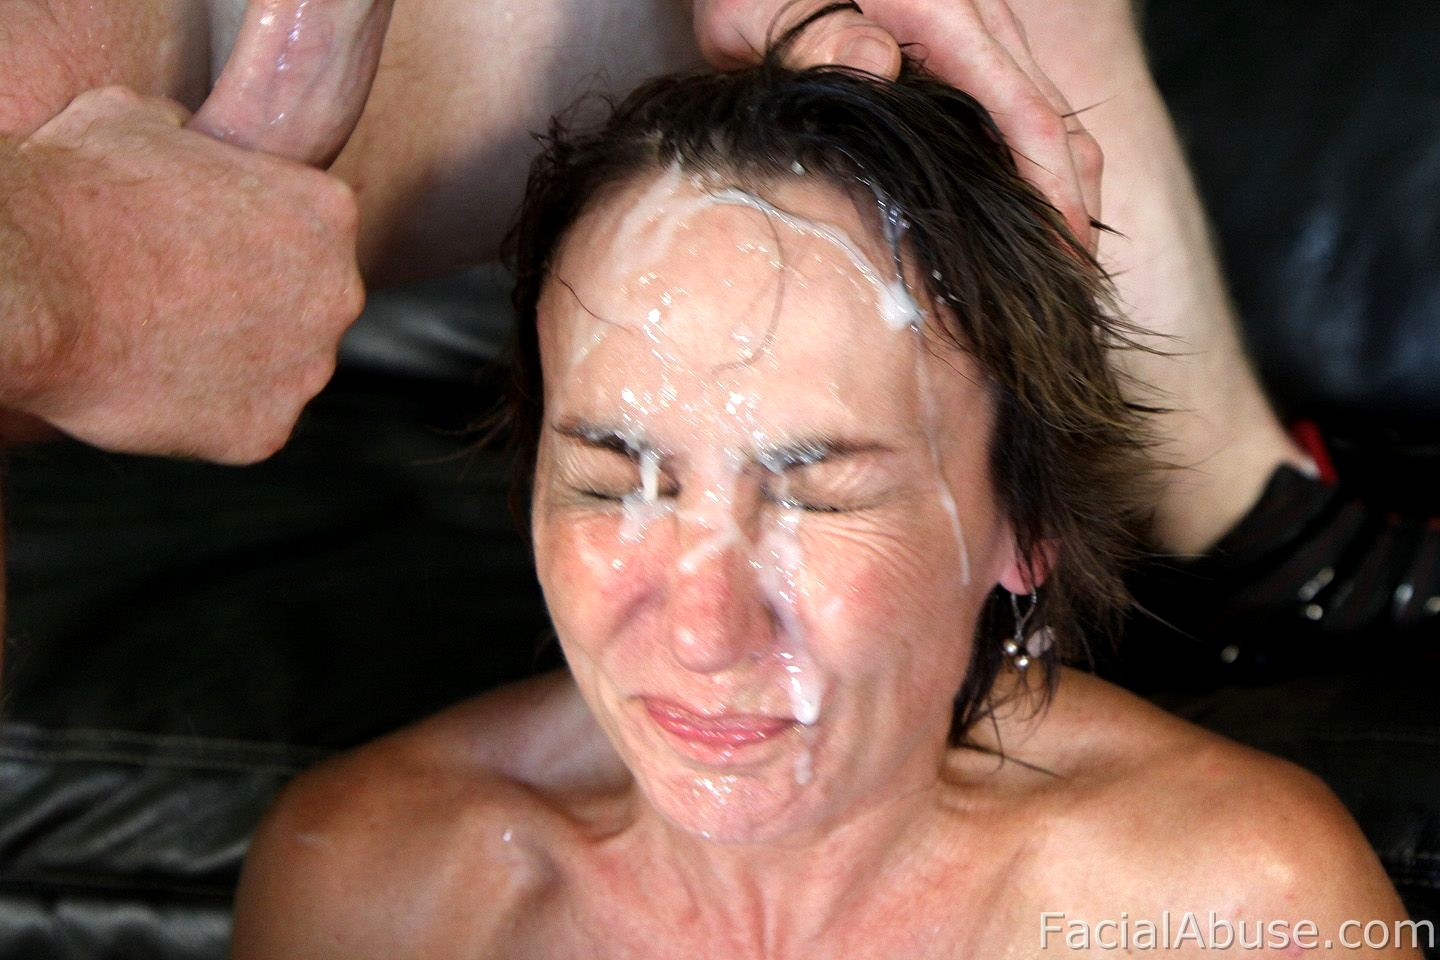 Babe Today Facial Abuse Lillian Tesh Adorable Cumshots -8573